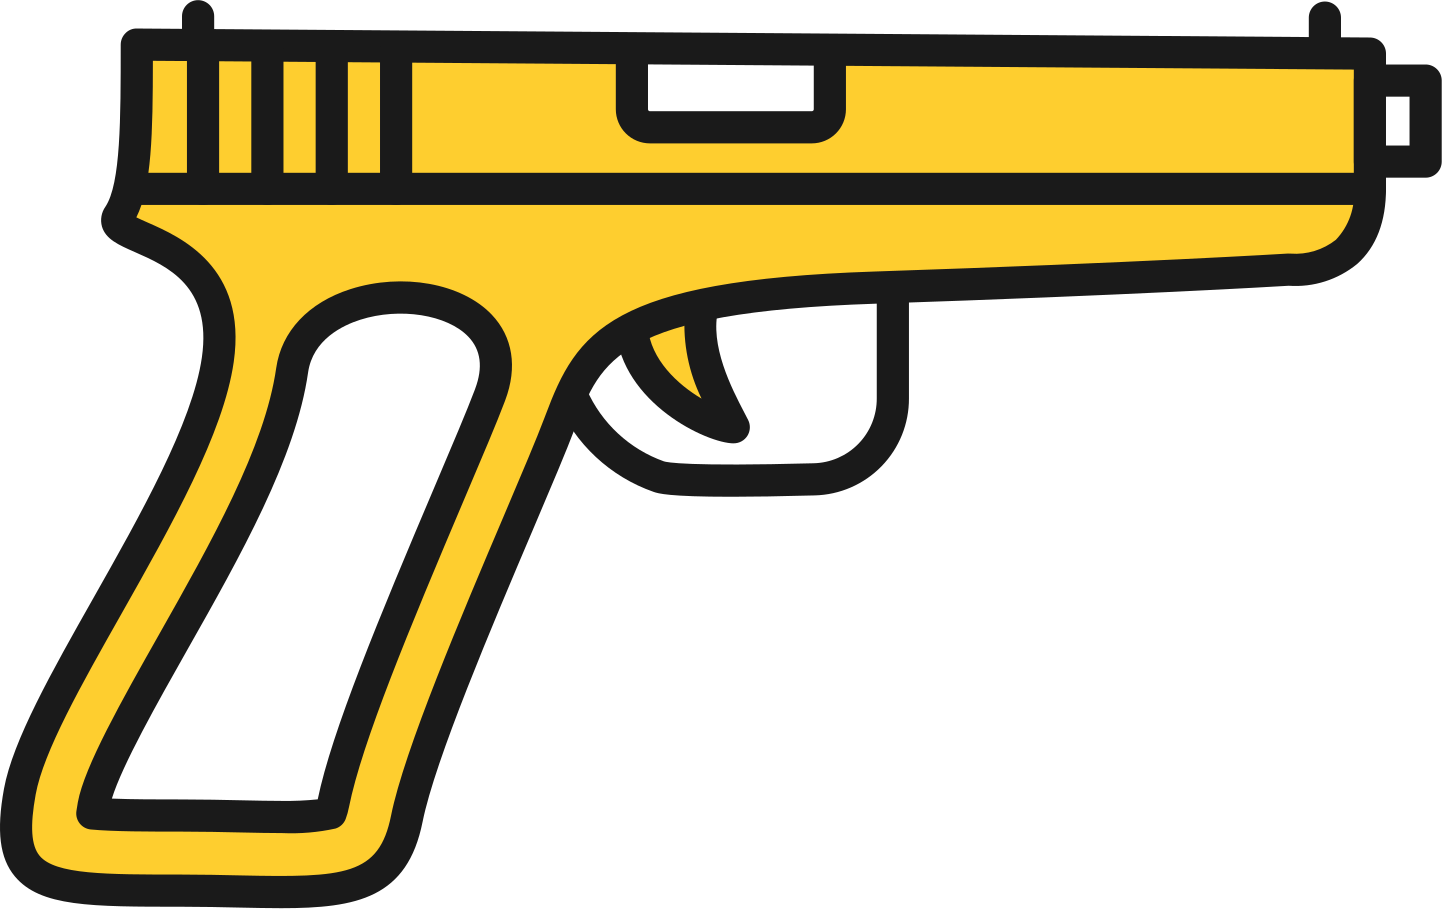 style pistol gun weapon Vector images in PNG and SVG | Icons8 Illustrations